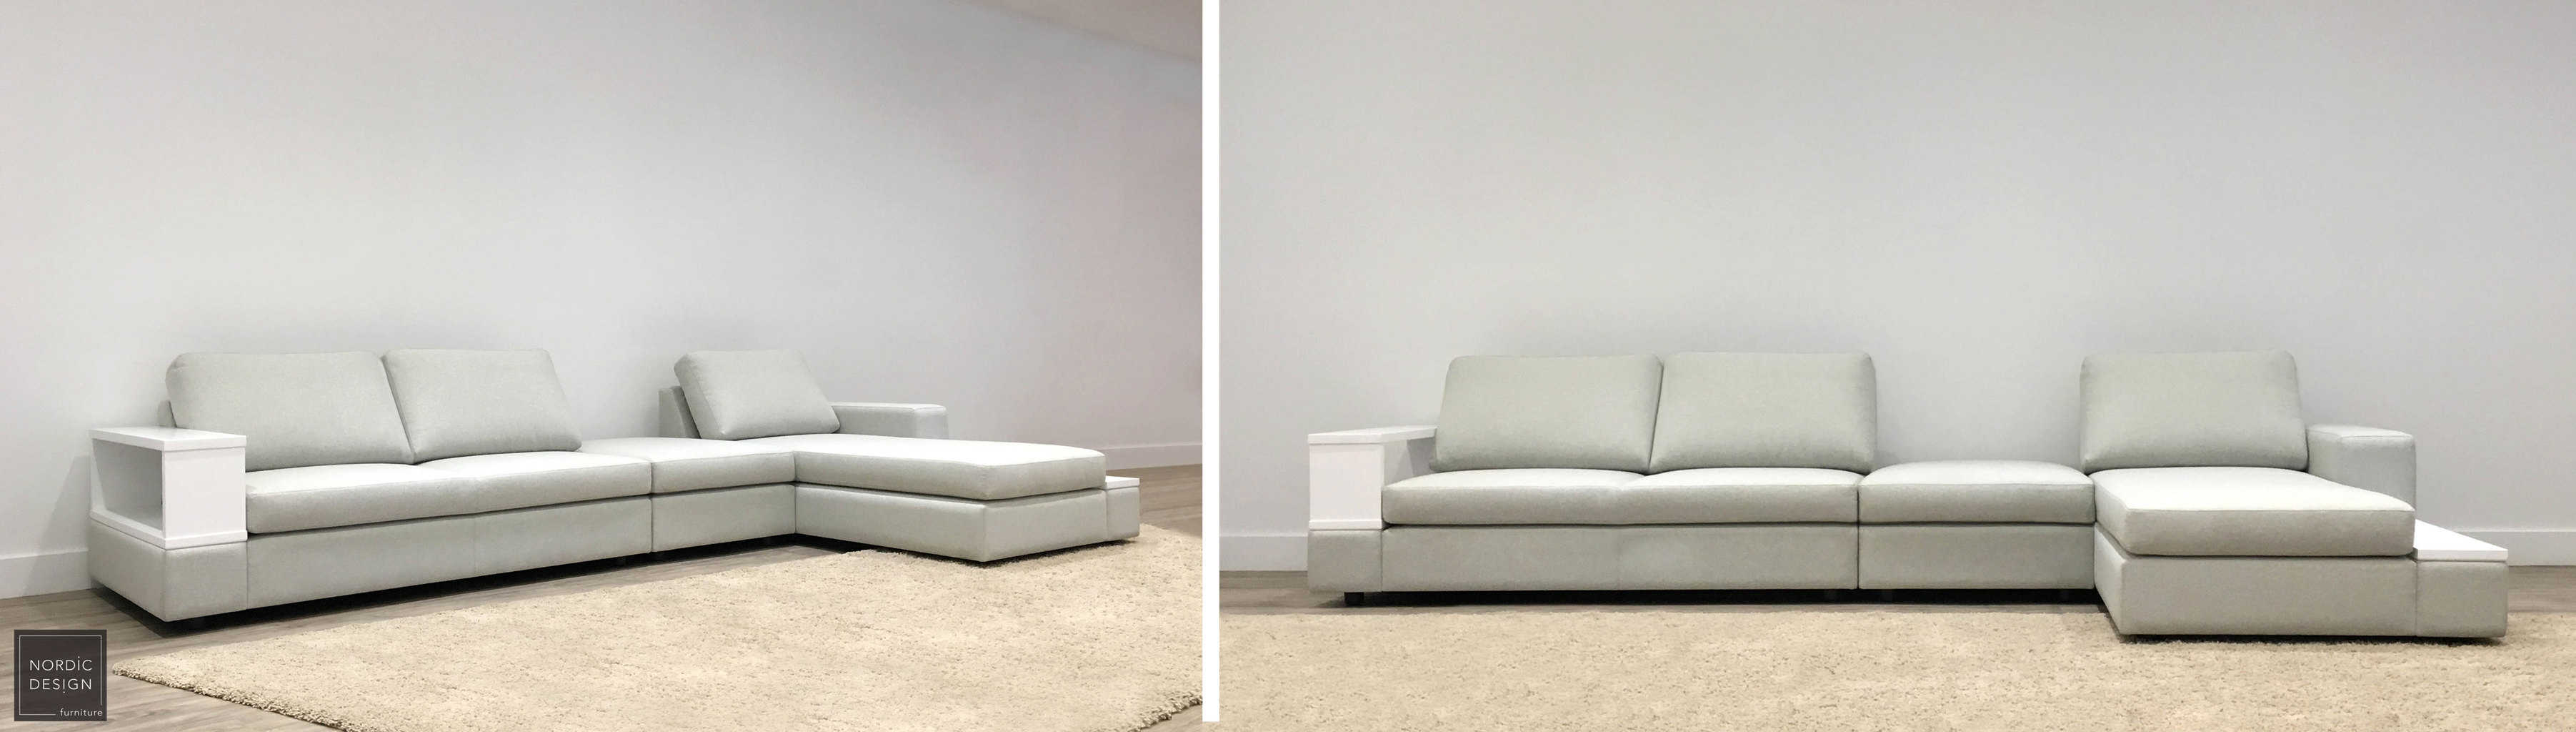 Wallace 4 Seater Mod Chaise Mod 6547 Wuest White 4 L Nordic